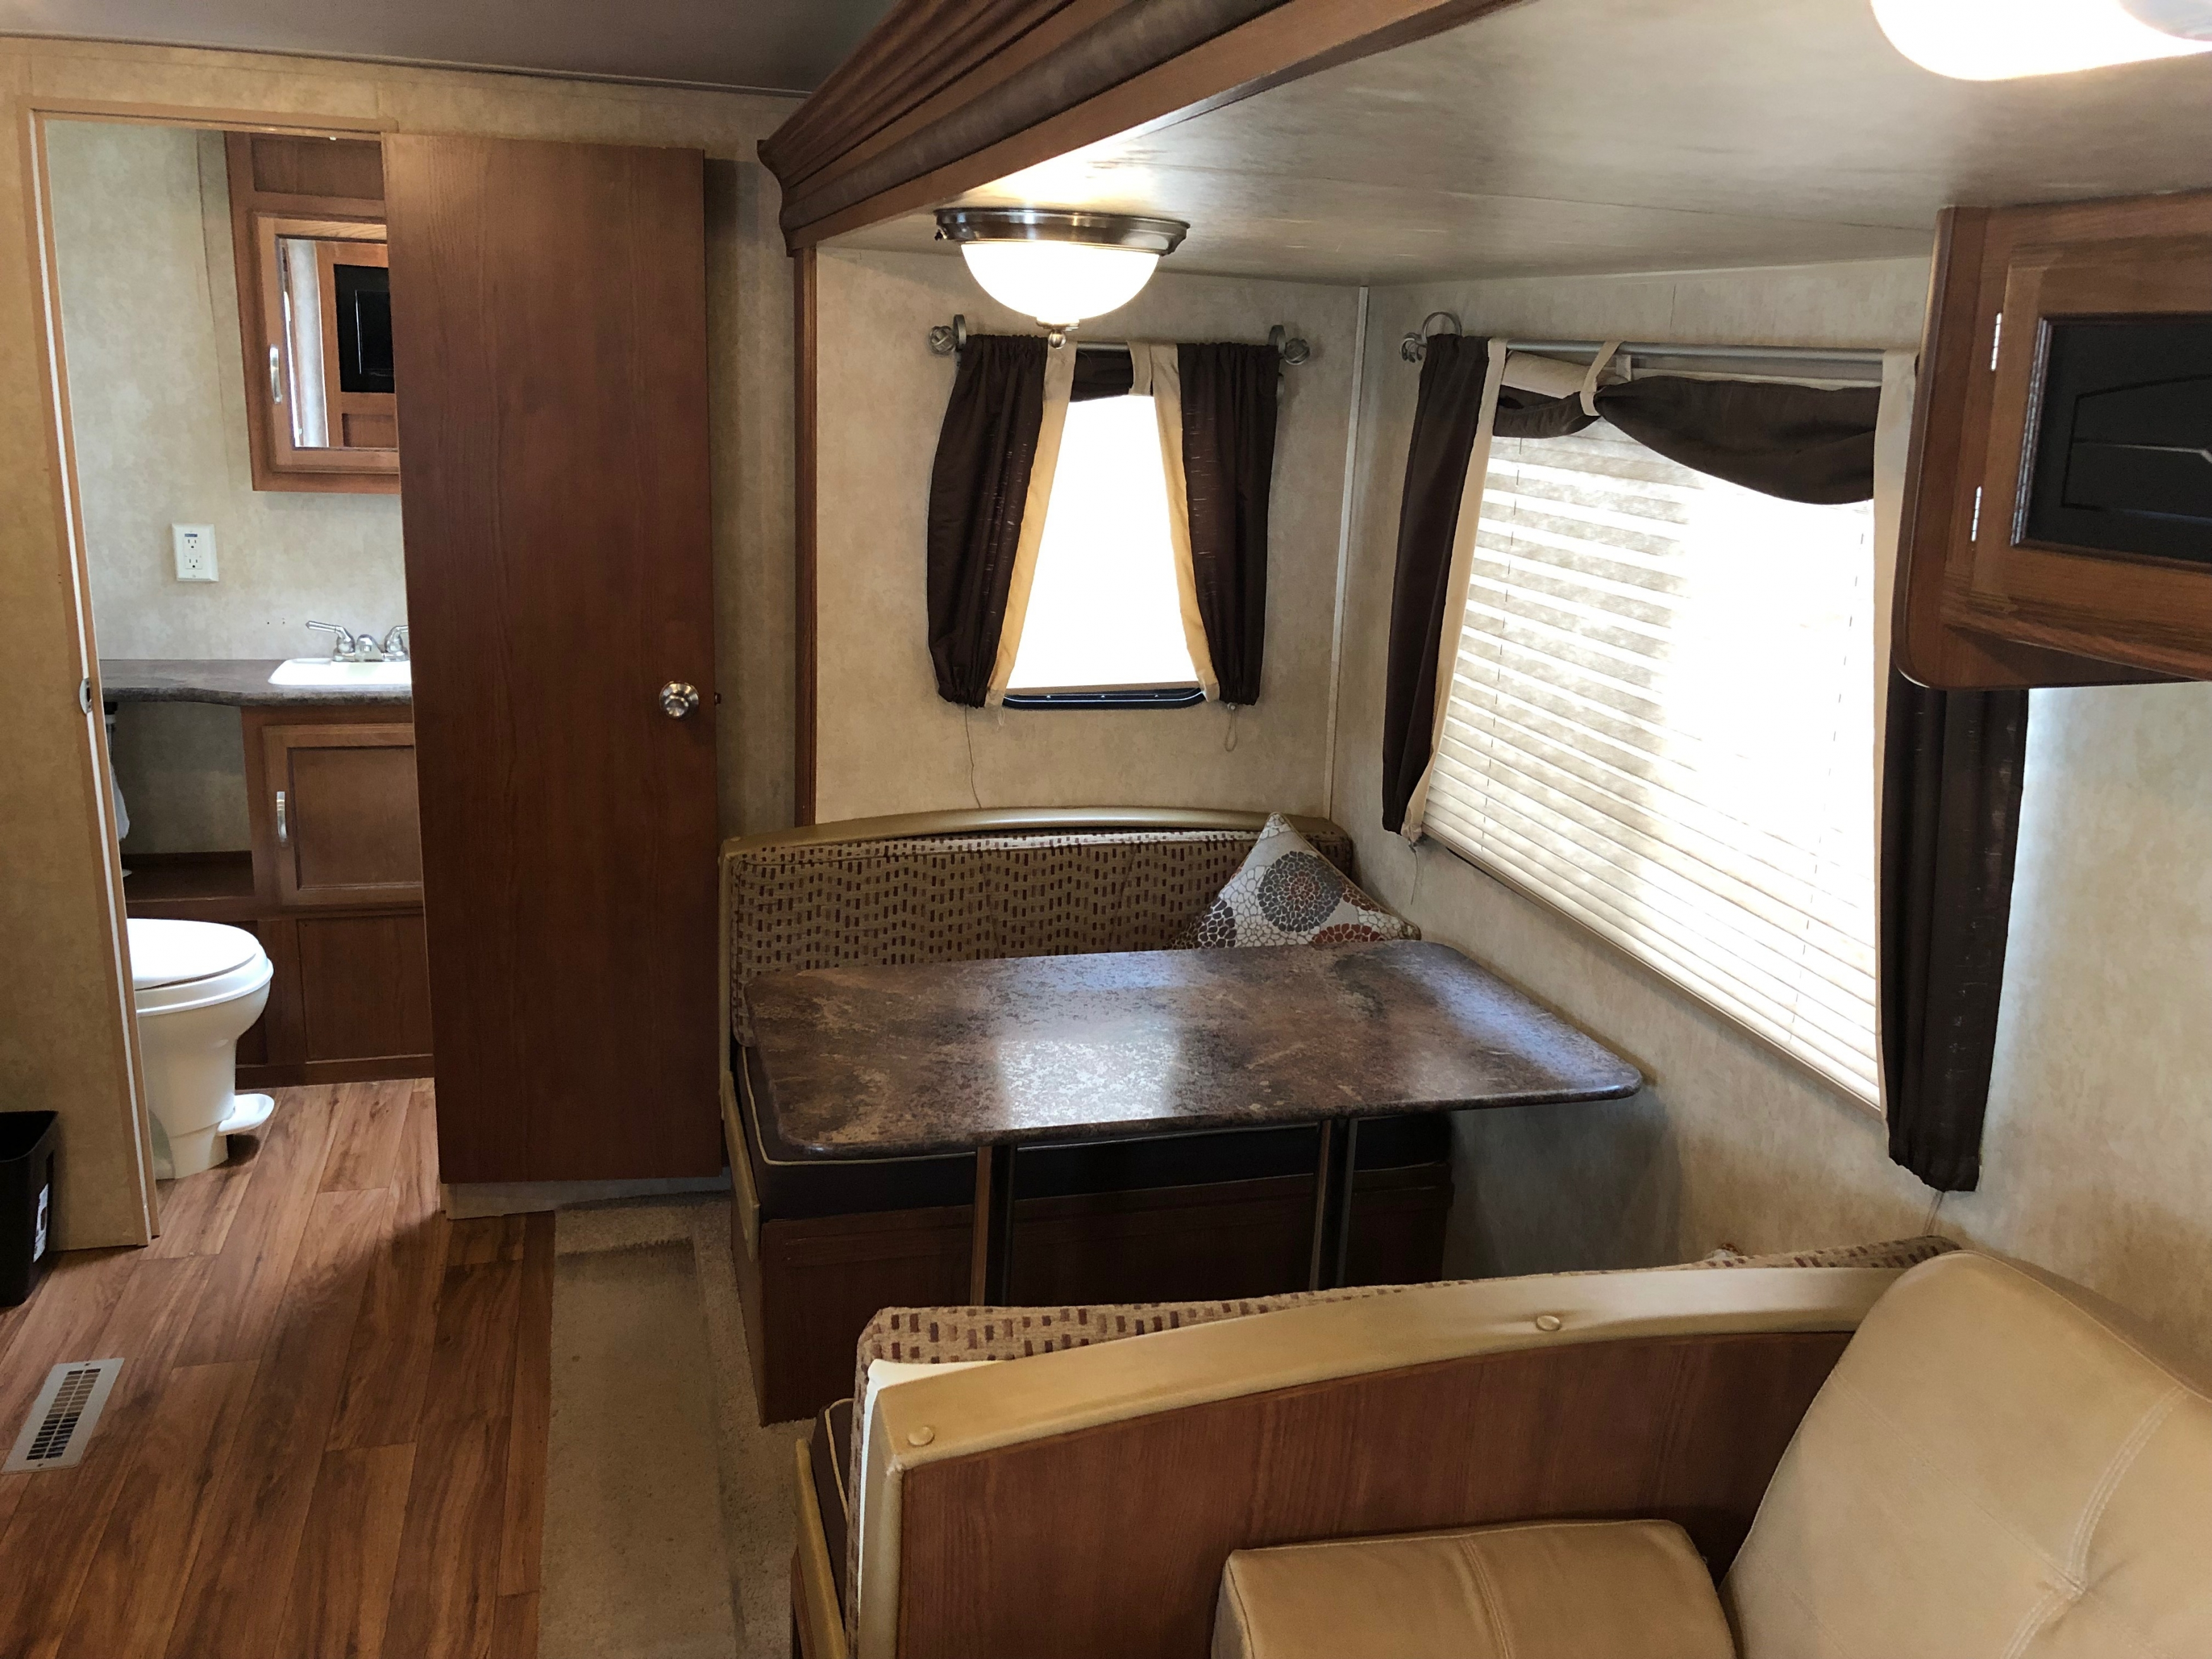 27' Wildwood Trailer with Slide Out Bathroom & Dinette View